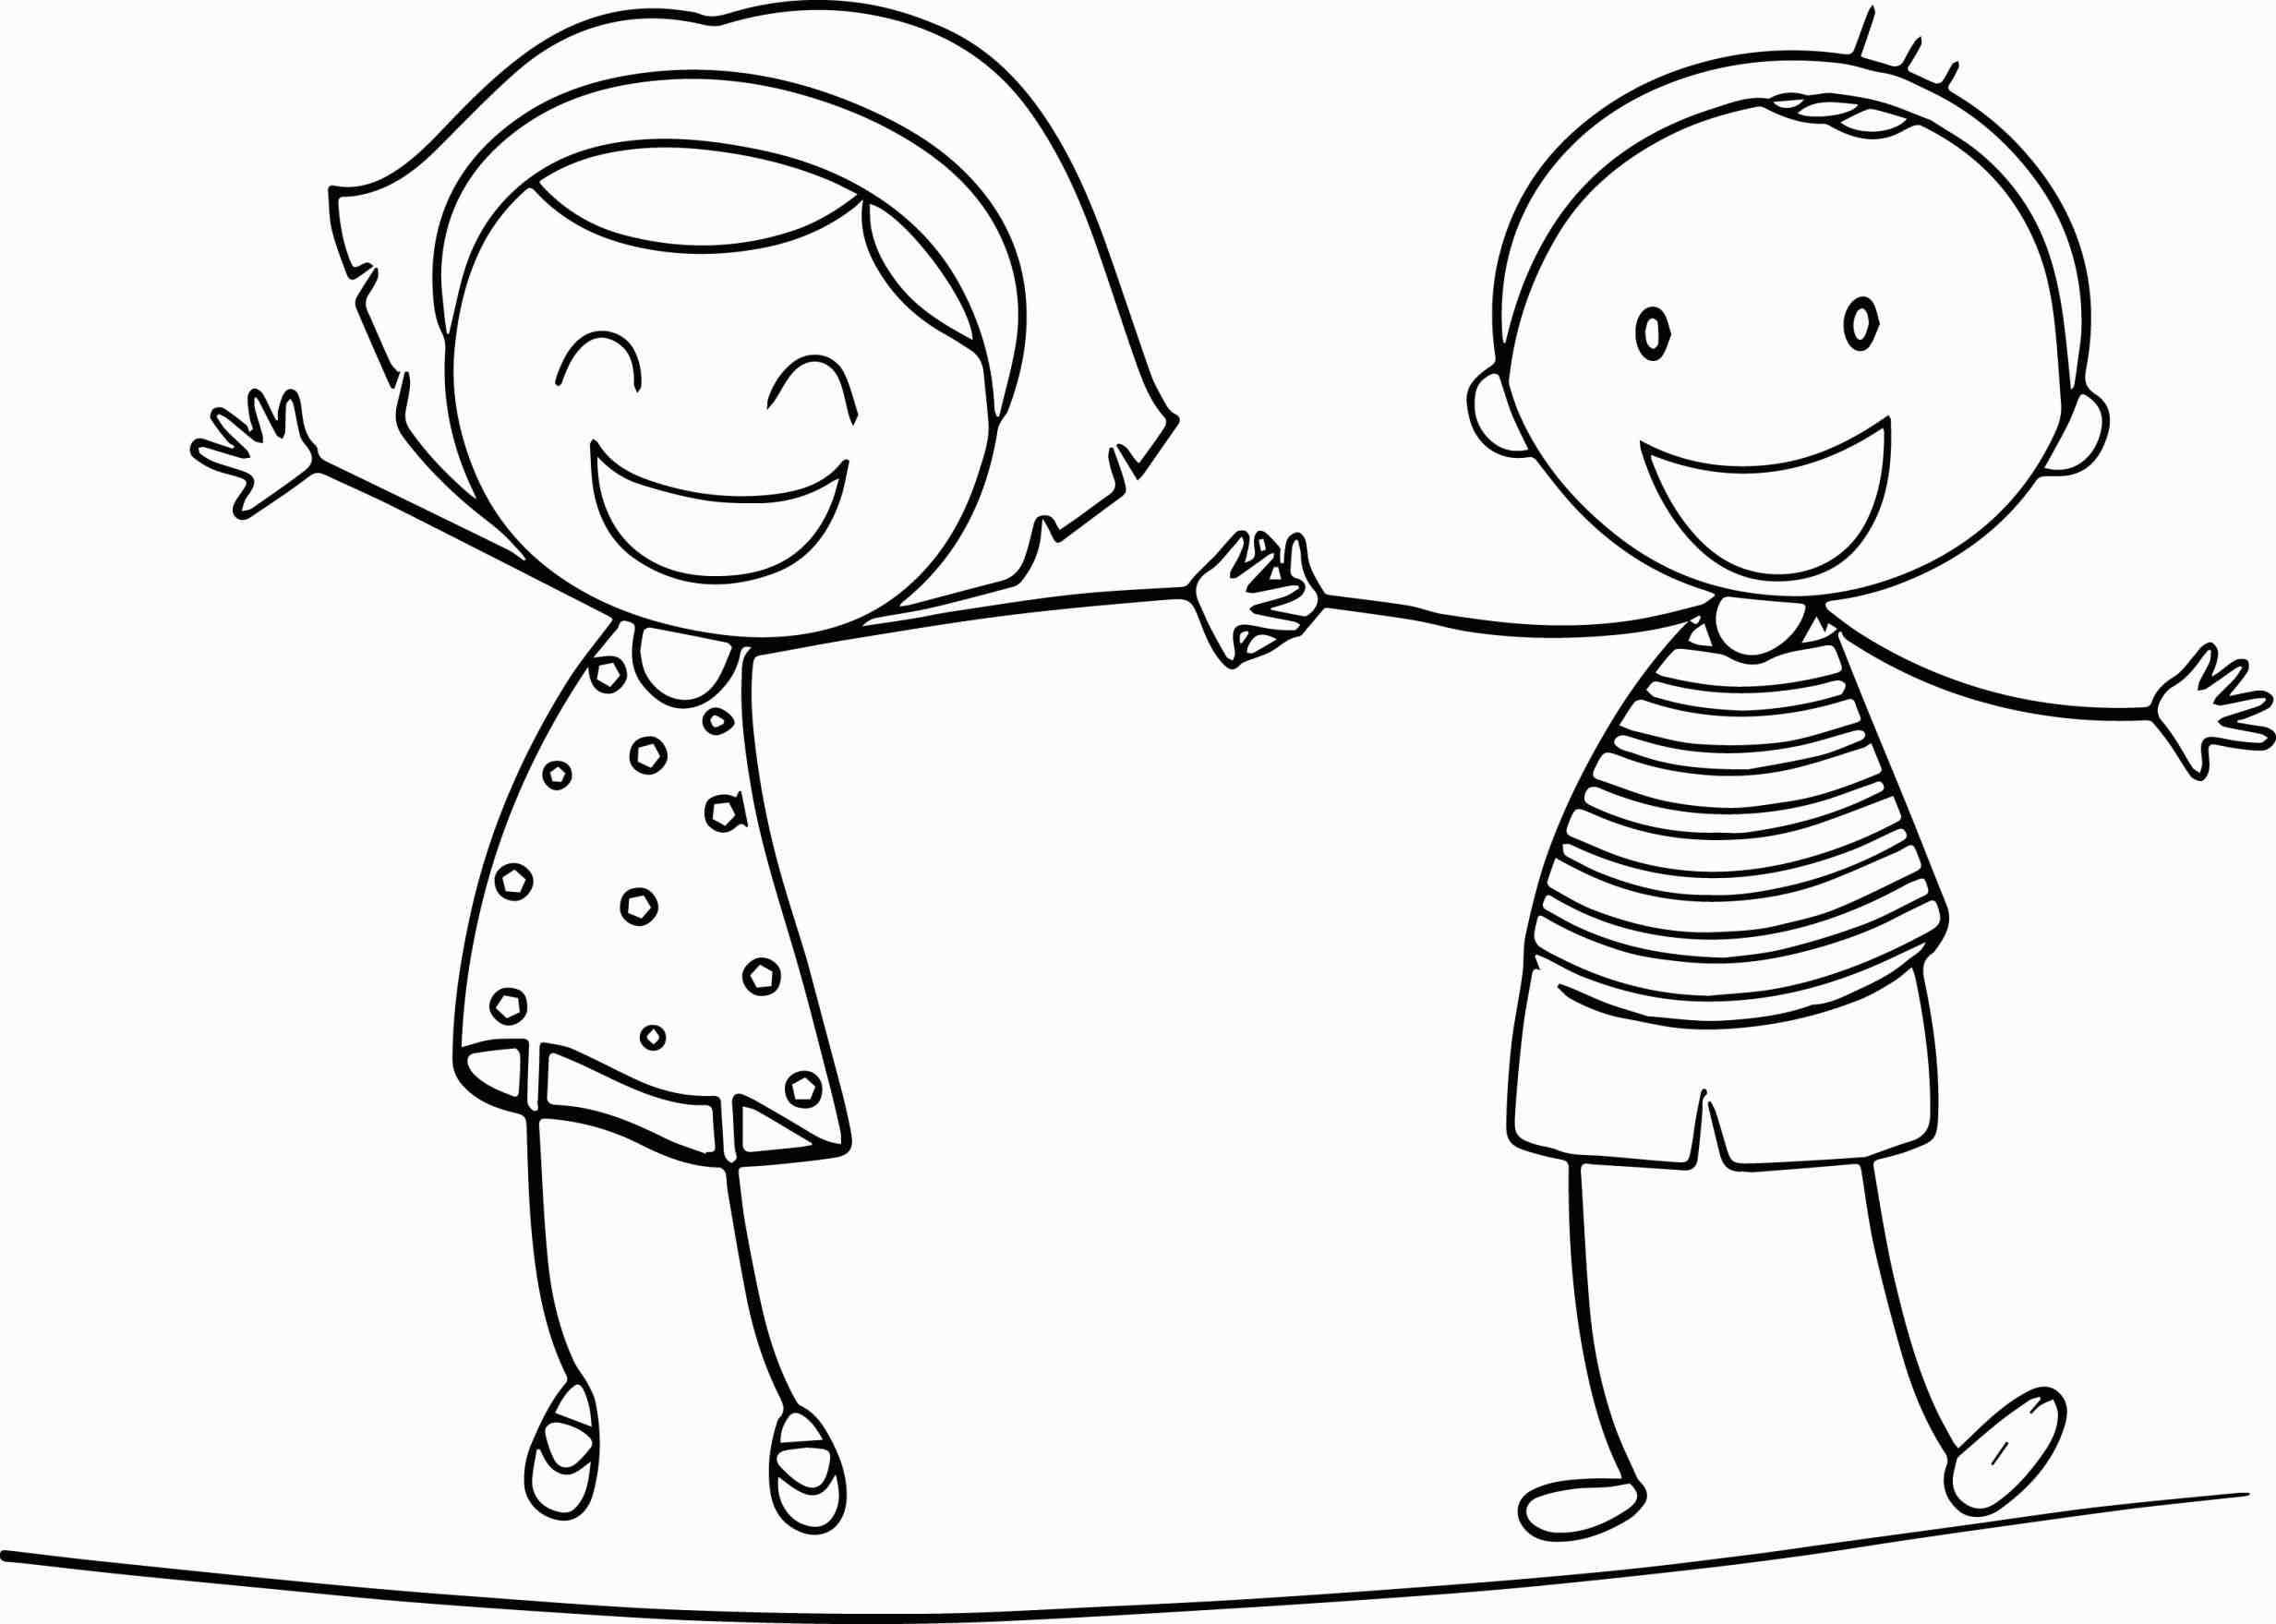 Boy And Girl Holding Hands Coloring Page Web Coloring Pages Cute Coloring Pages Boy And Girl Drawing Coloring Pages For Girls